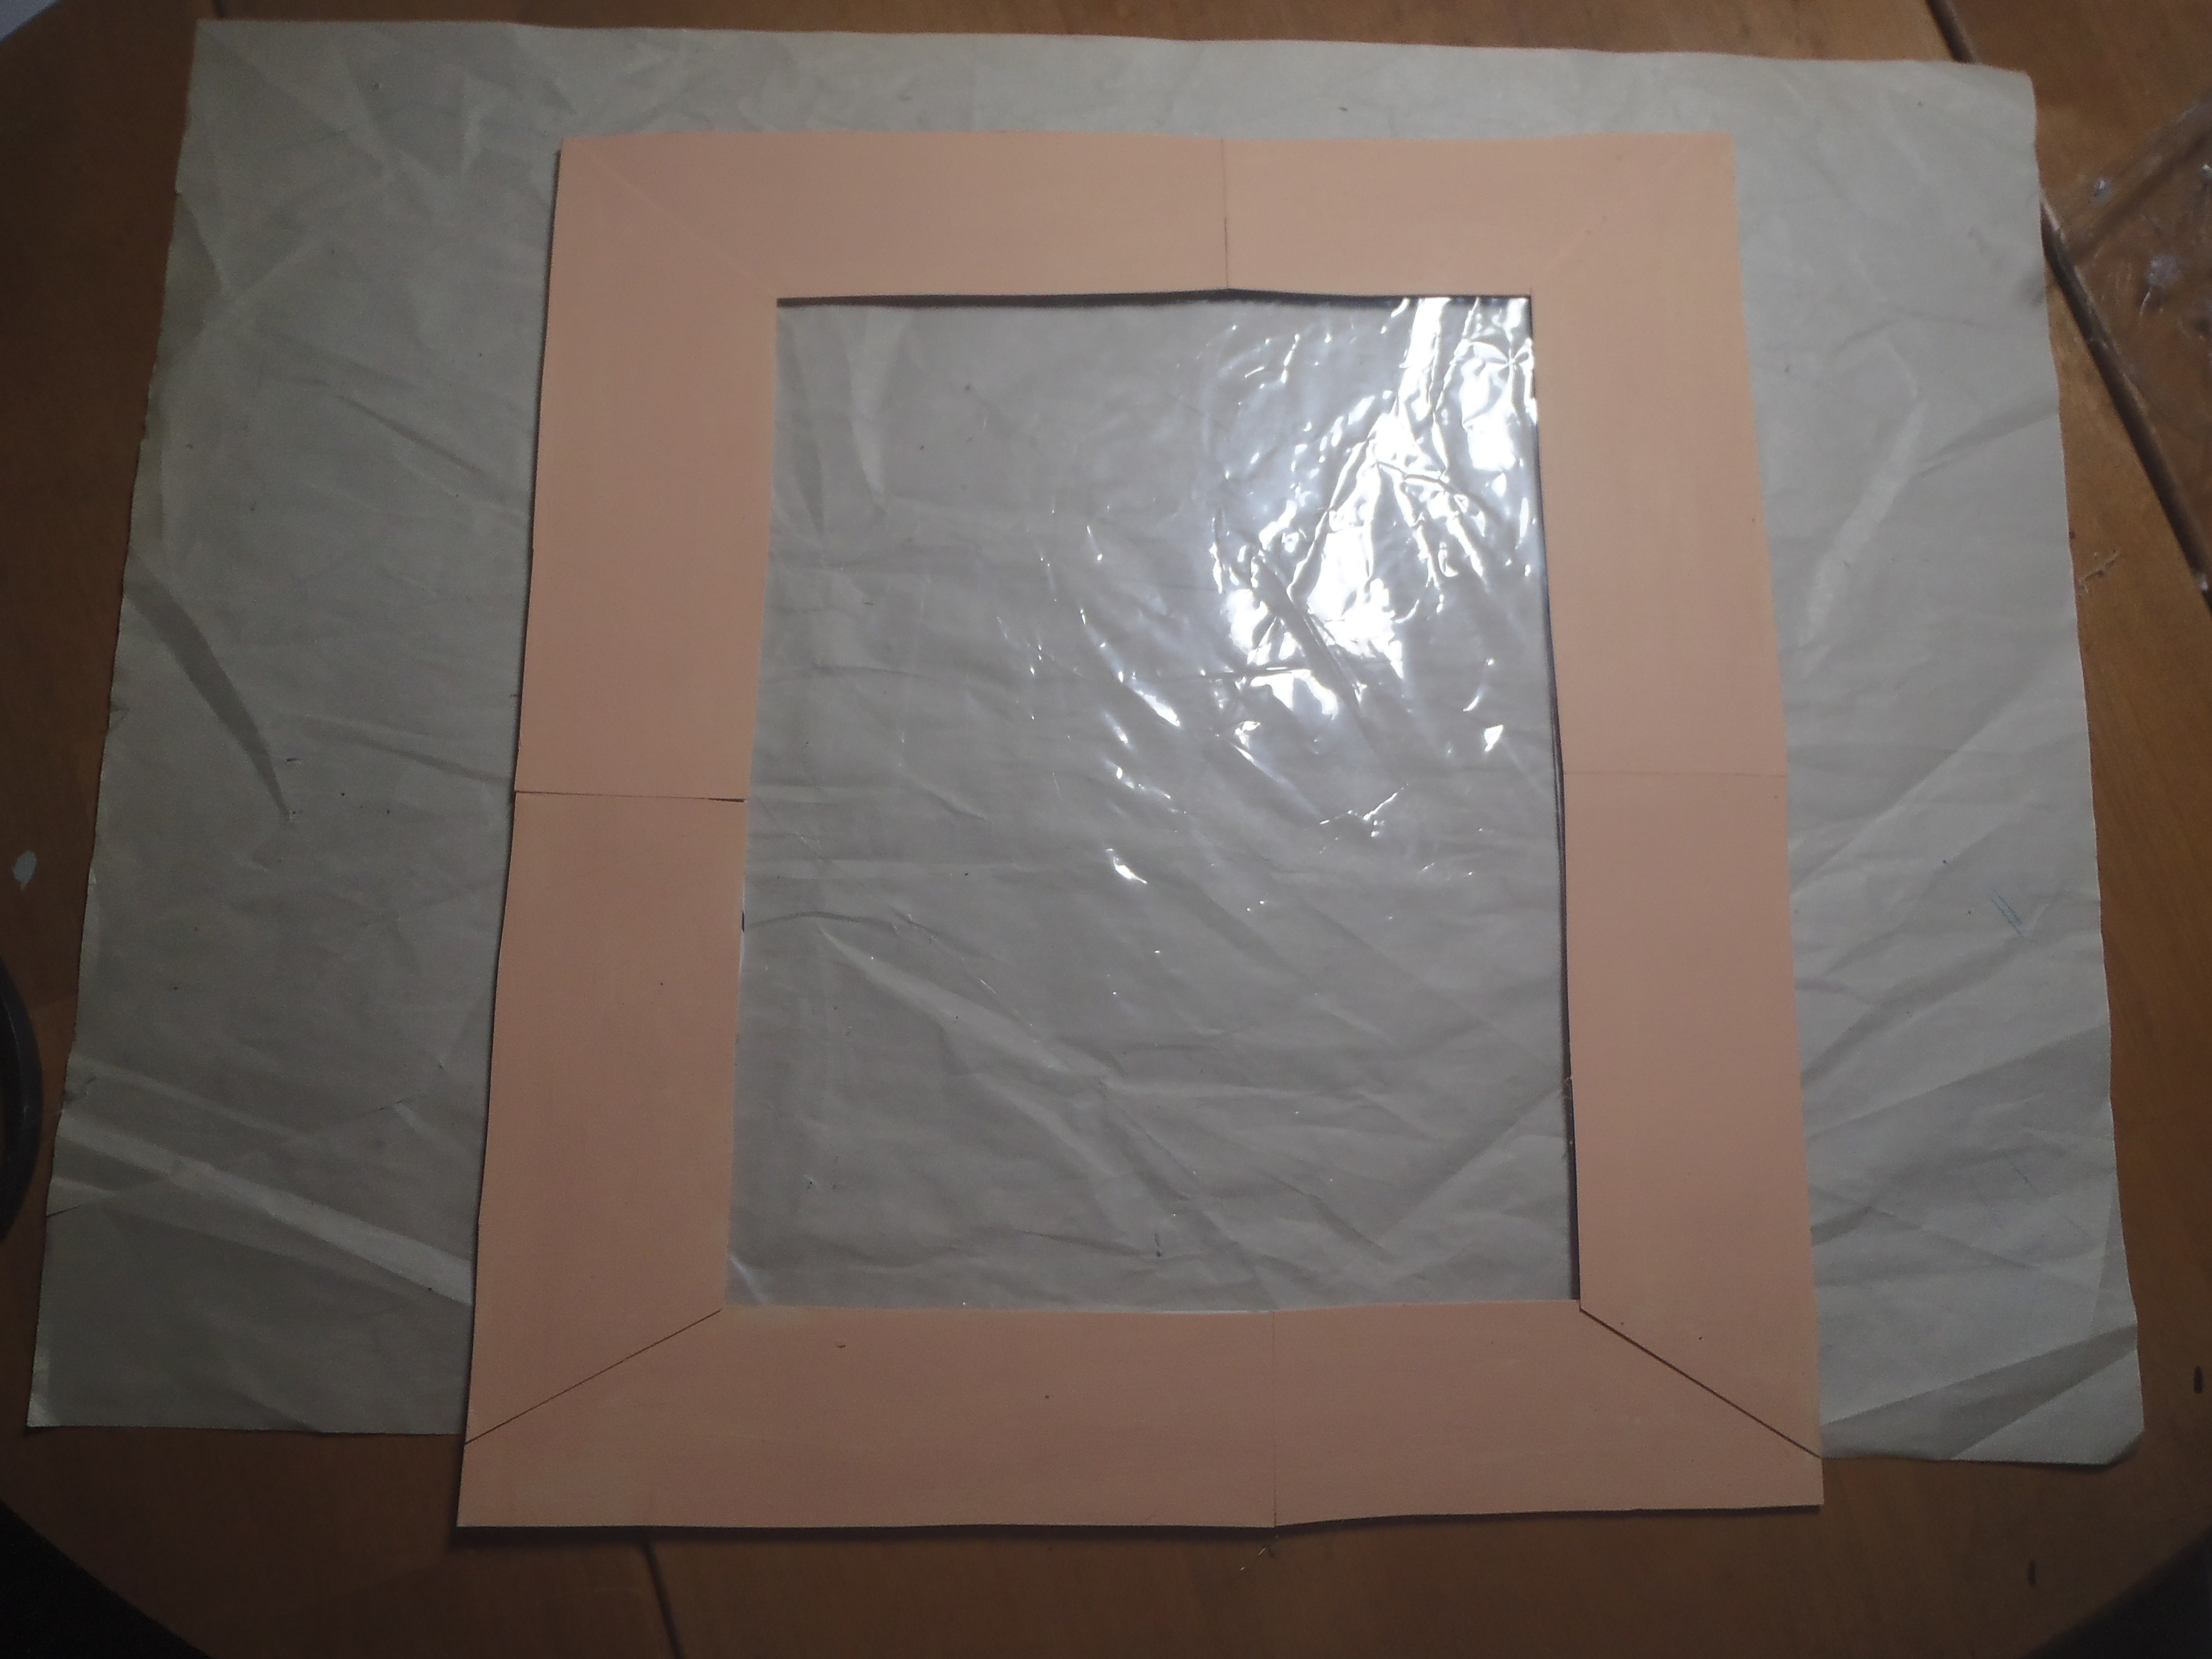 How to Attach Plastic Film to Picture Frame - Craft Cycle